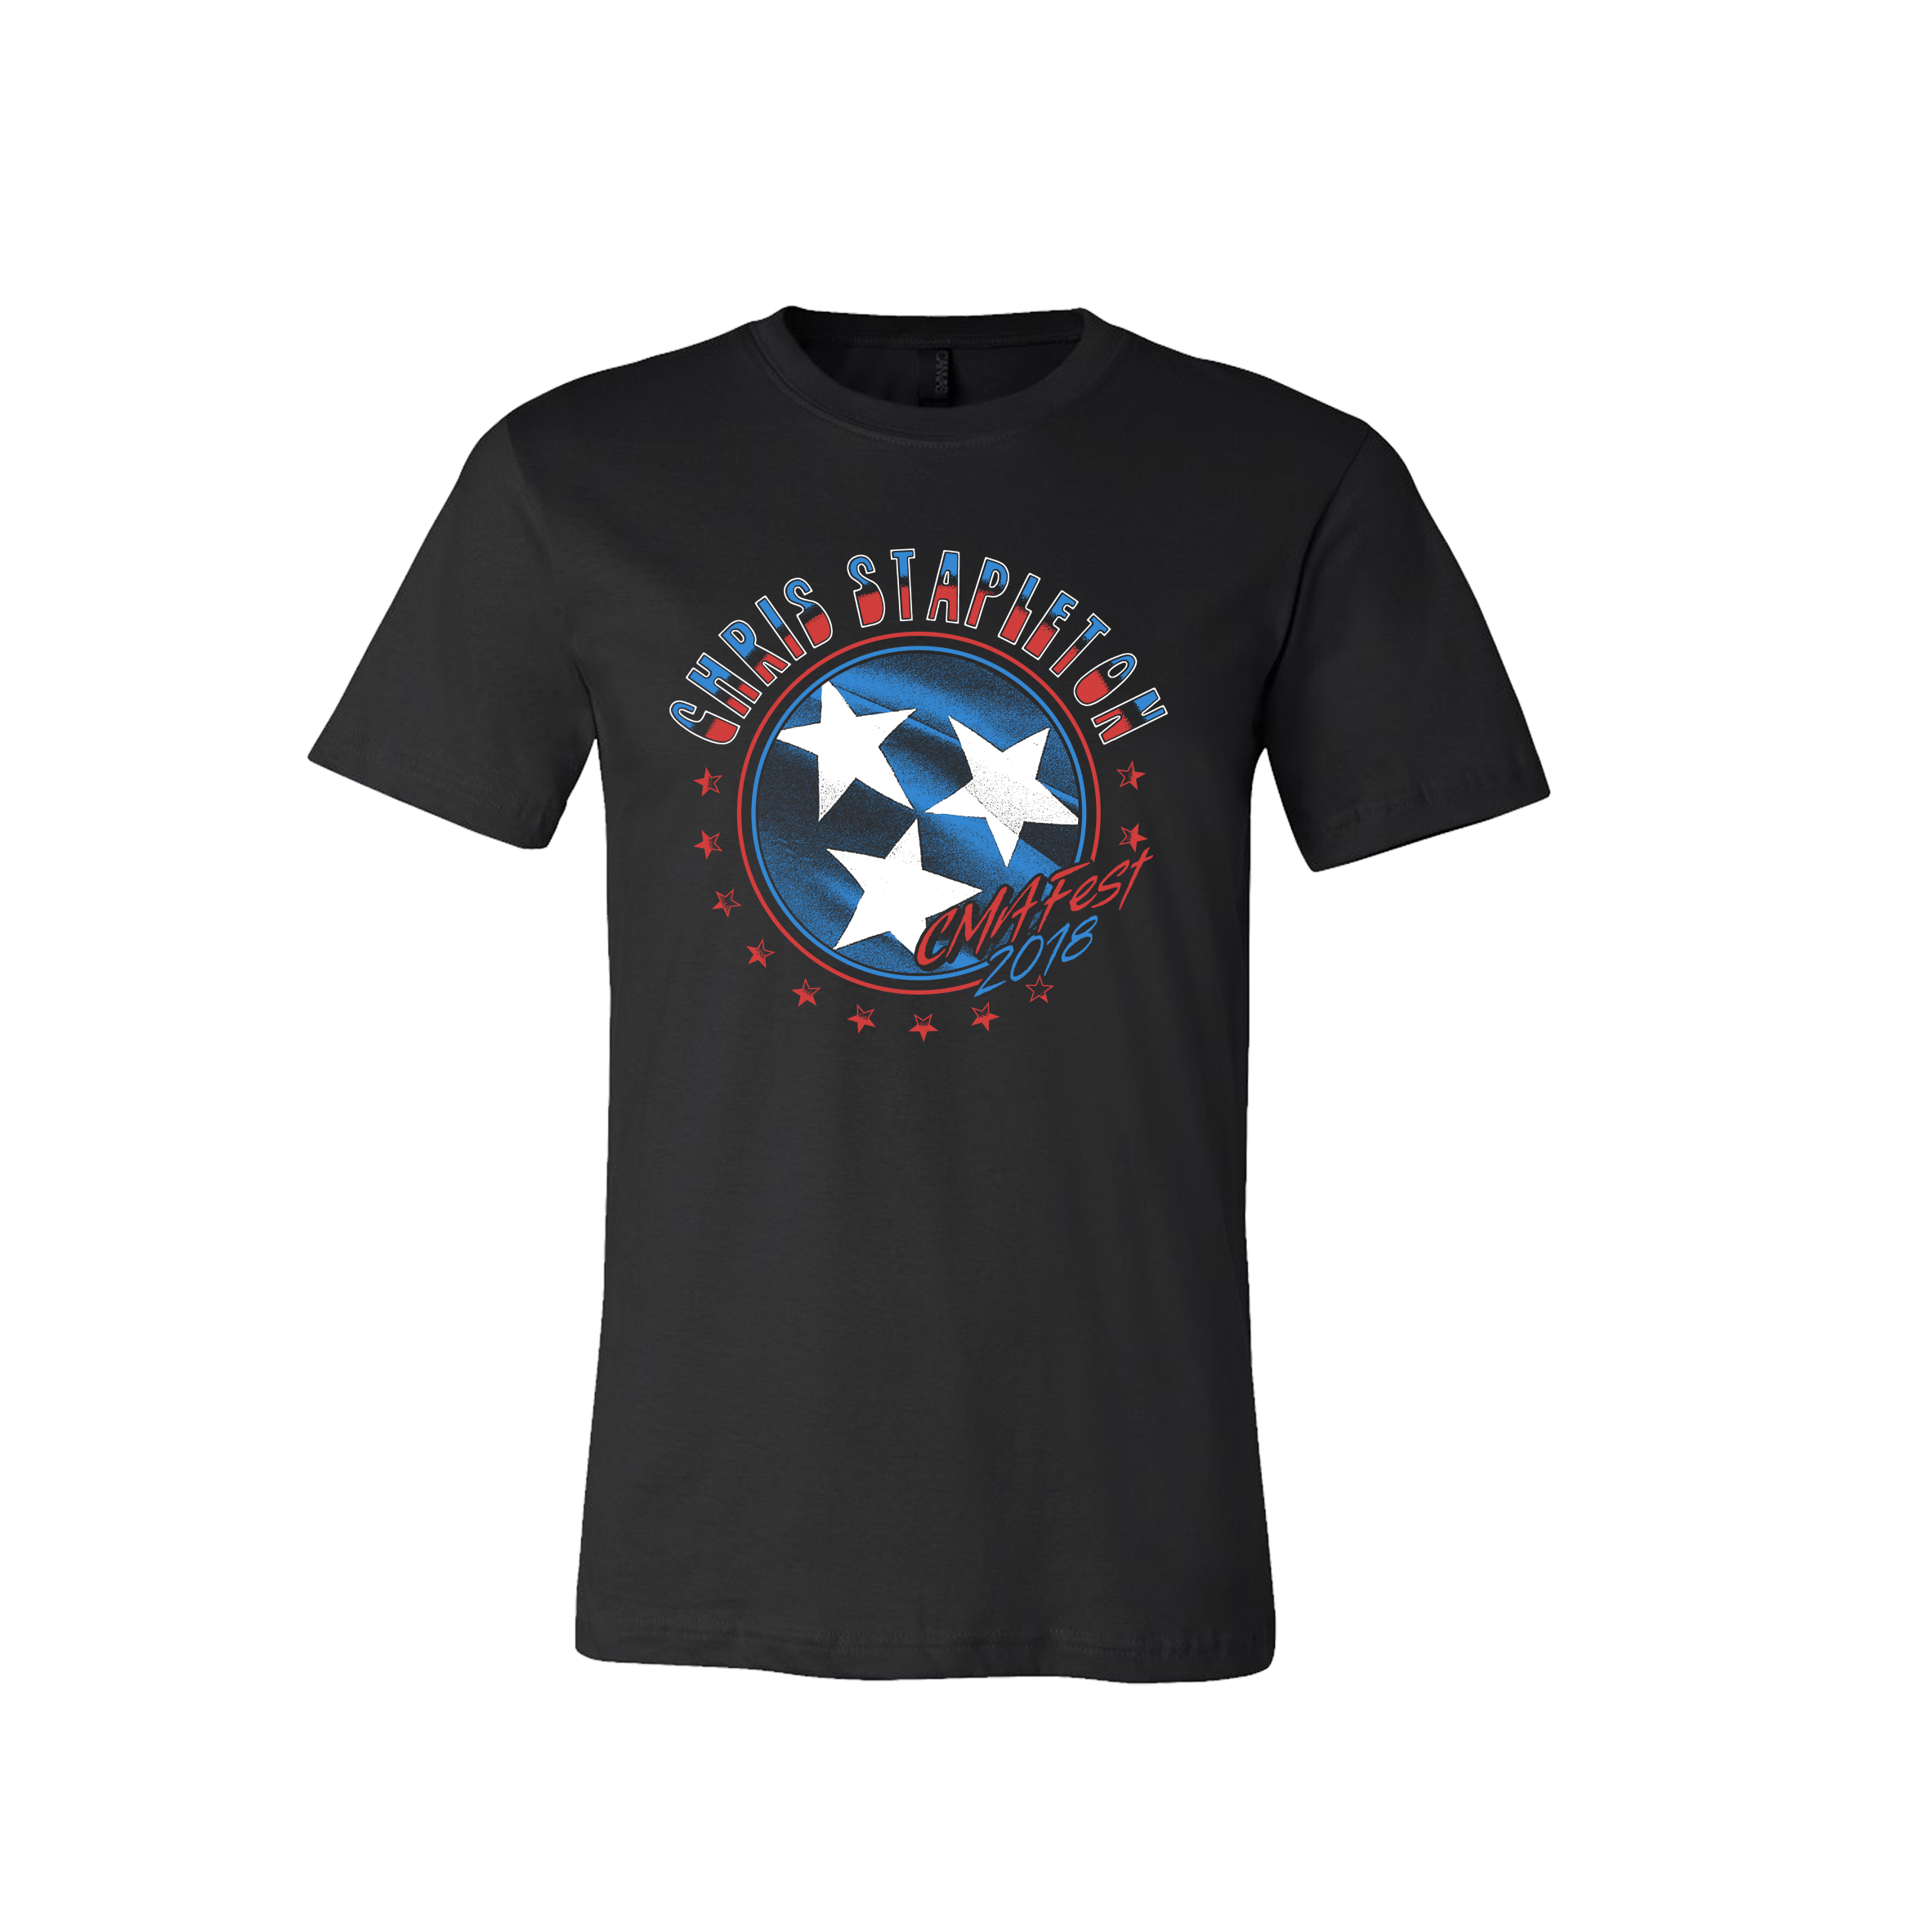 The CMA Fest Tennessee Flag T